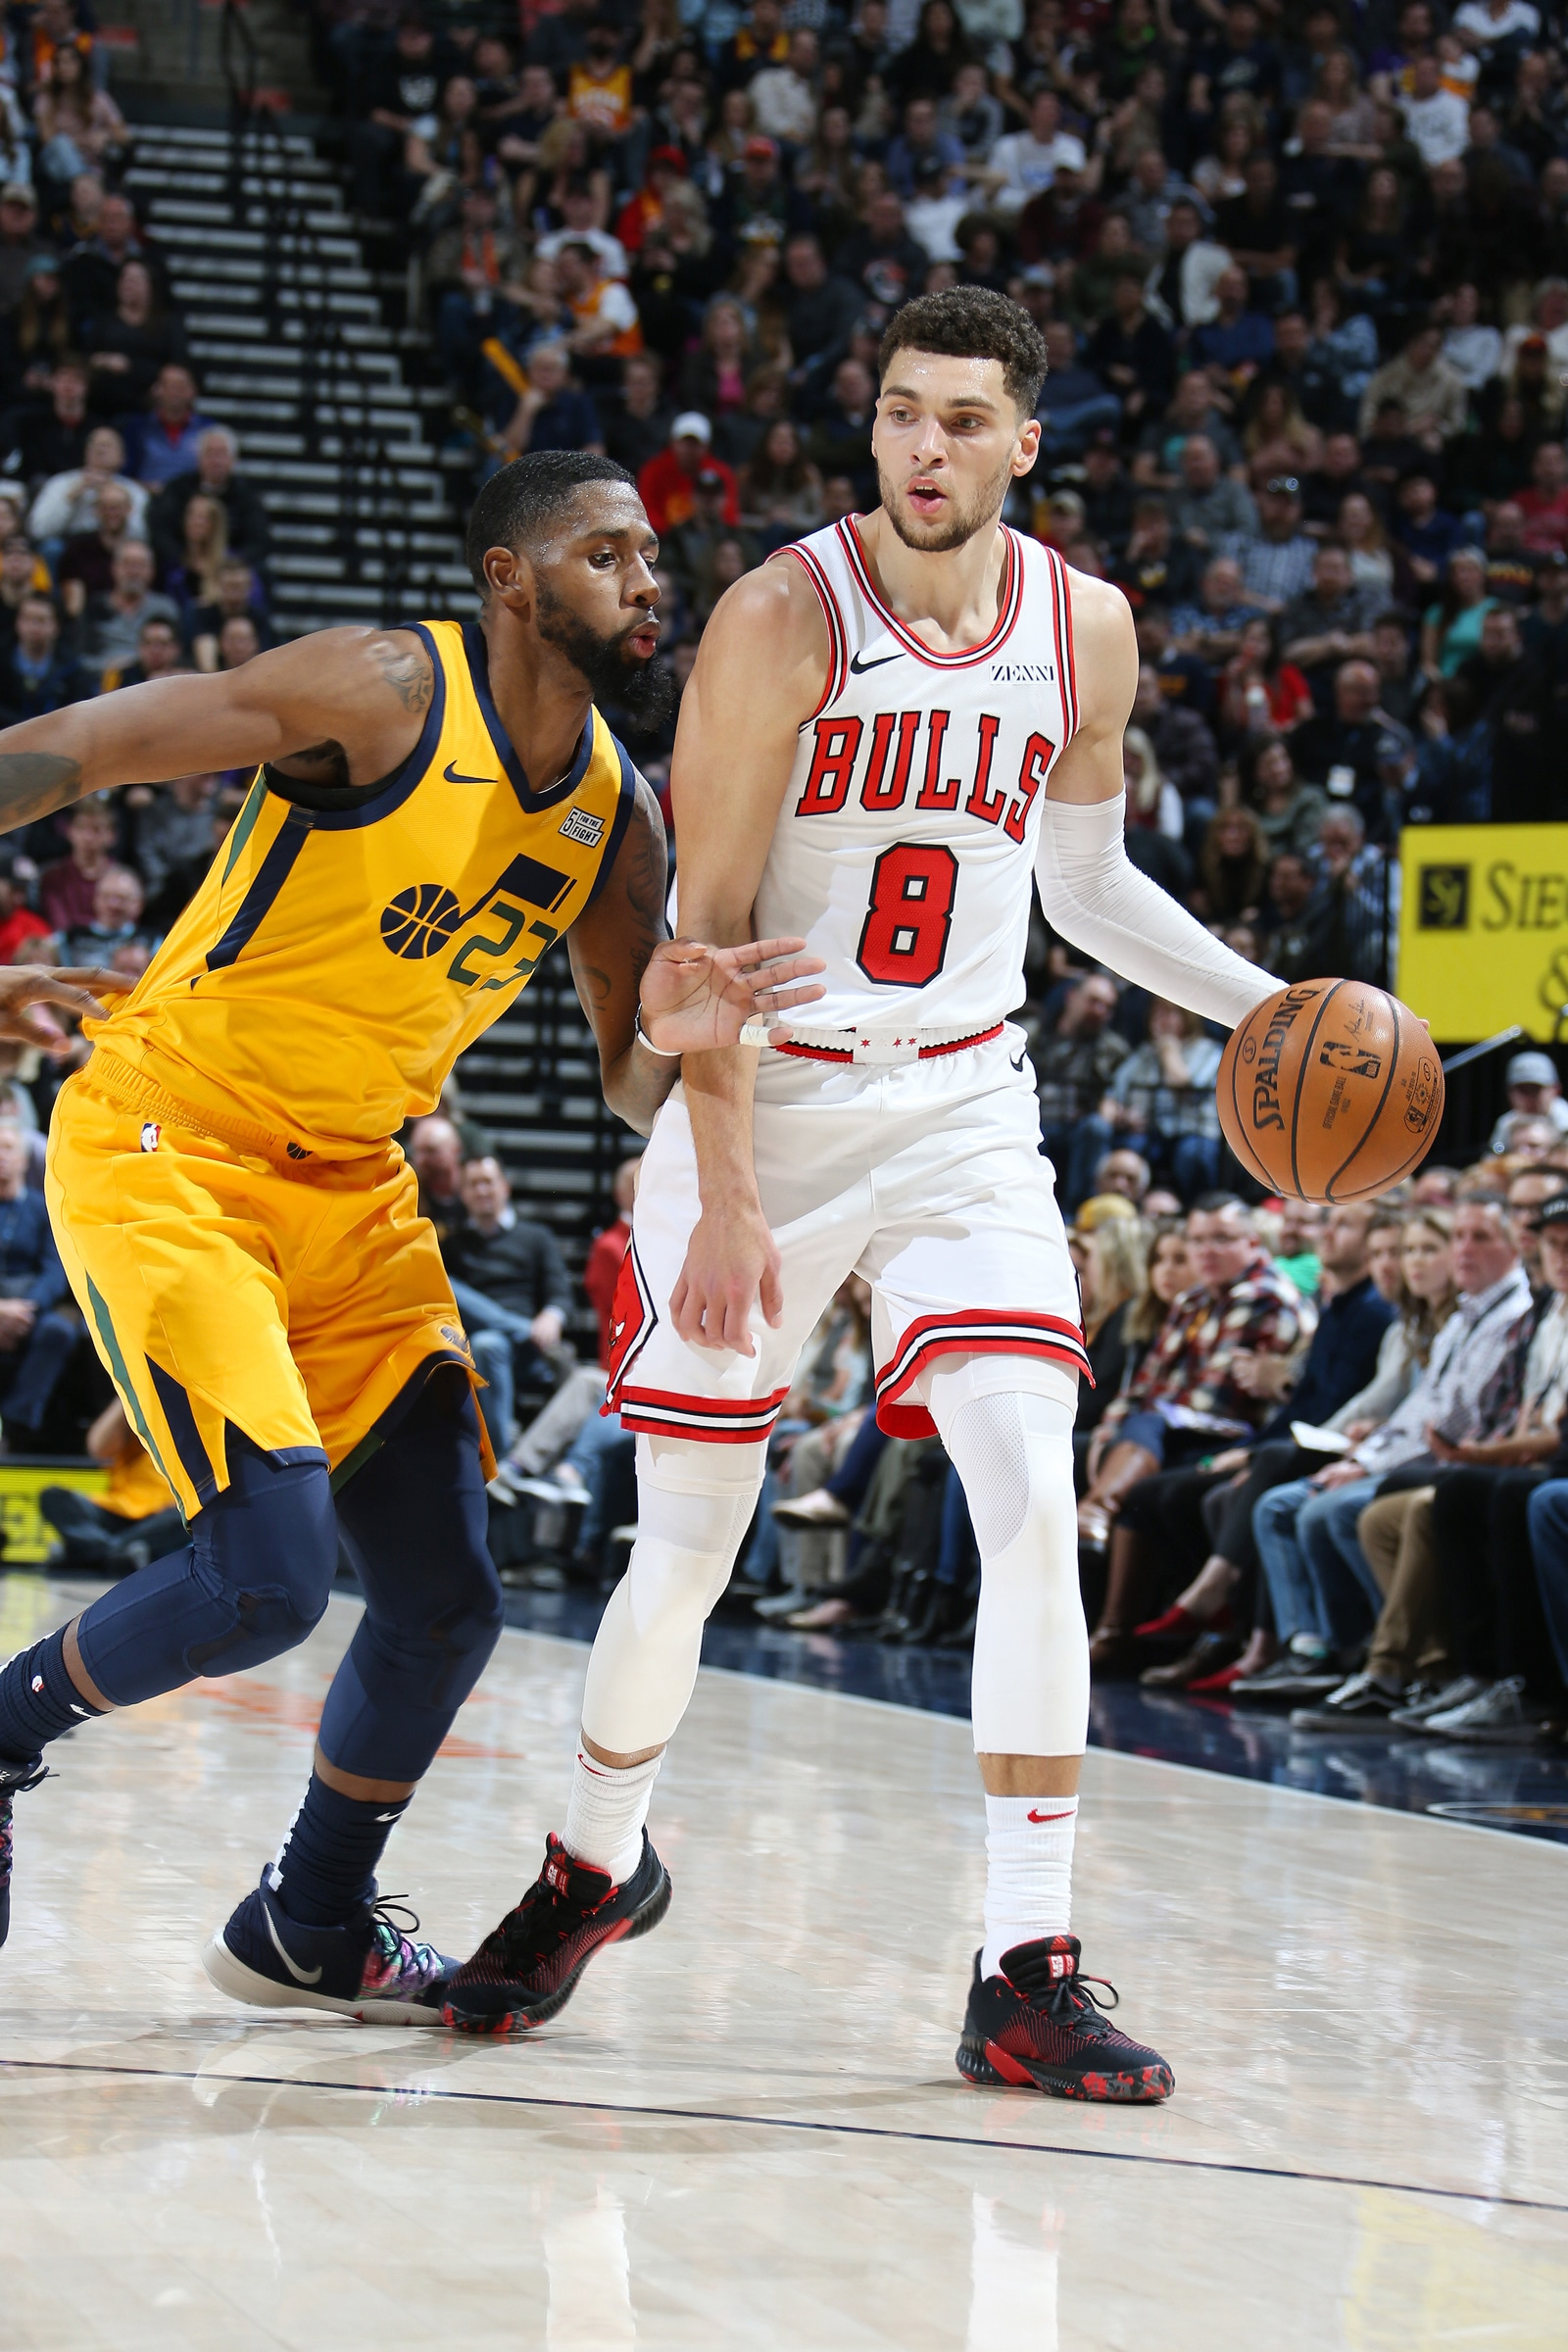 Zach LaVine #8 of the Chicago Bulls handles the ball during the game against the Utah Jazz on January 12, 2019 at Vivint Smart Home Arena in Salt Lake City, Utah.